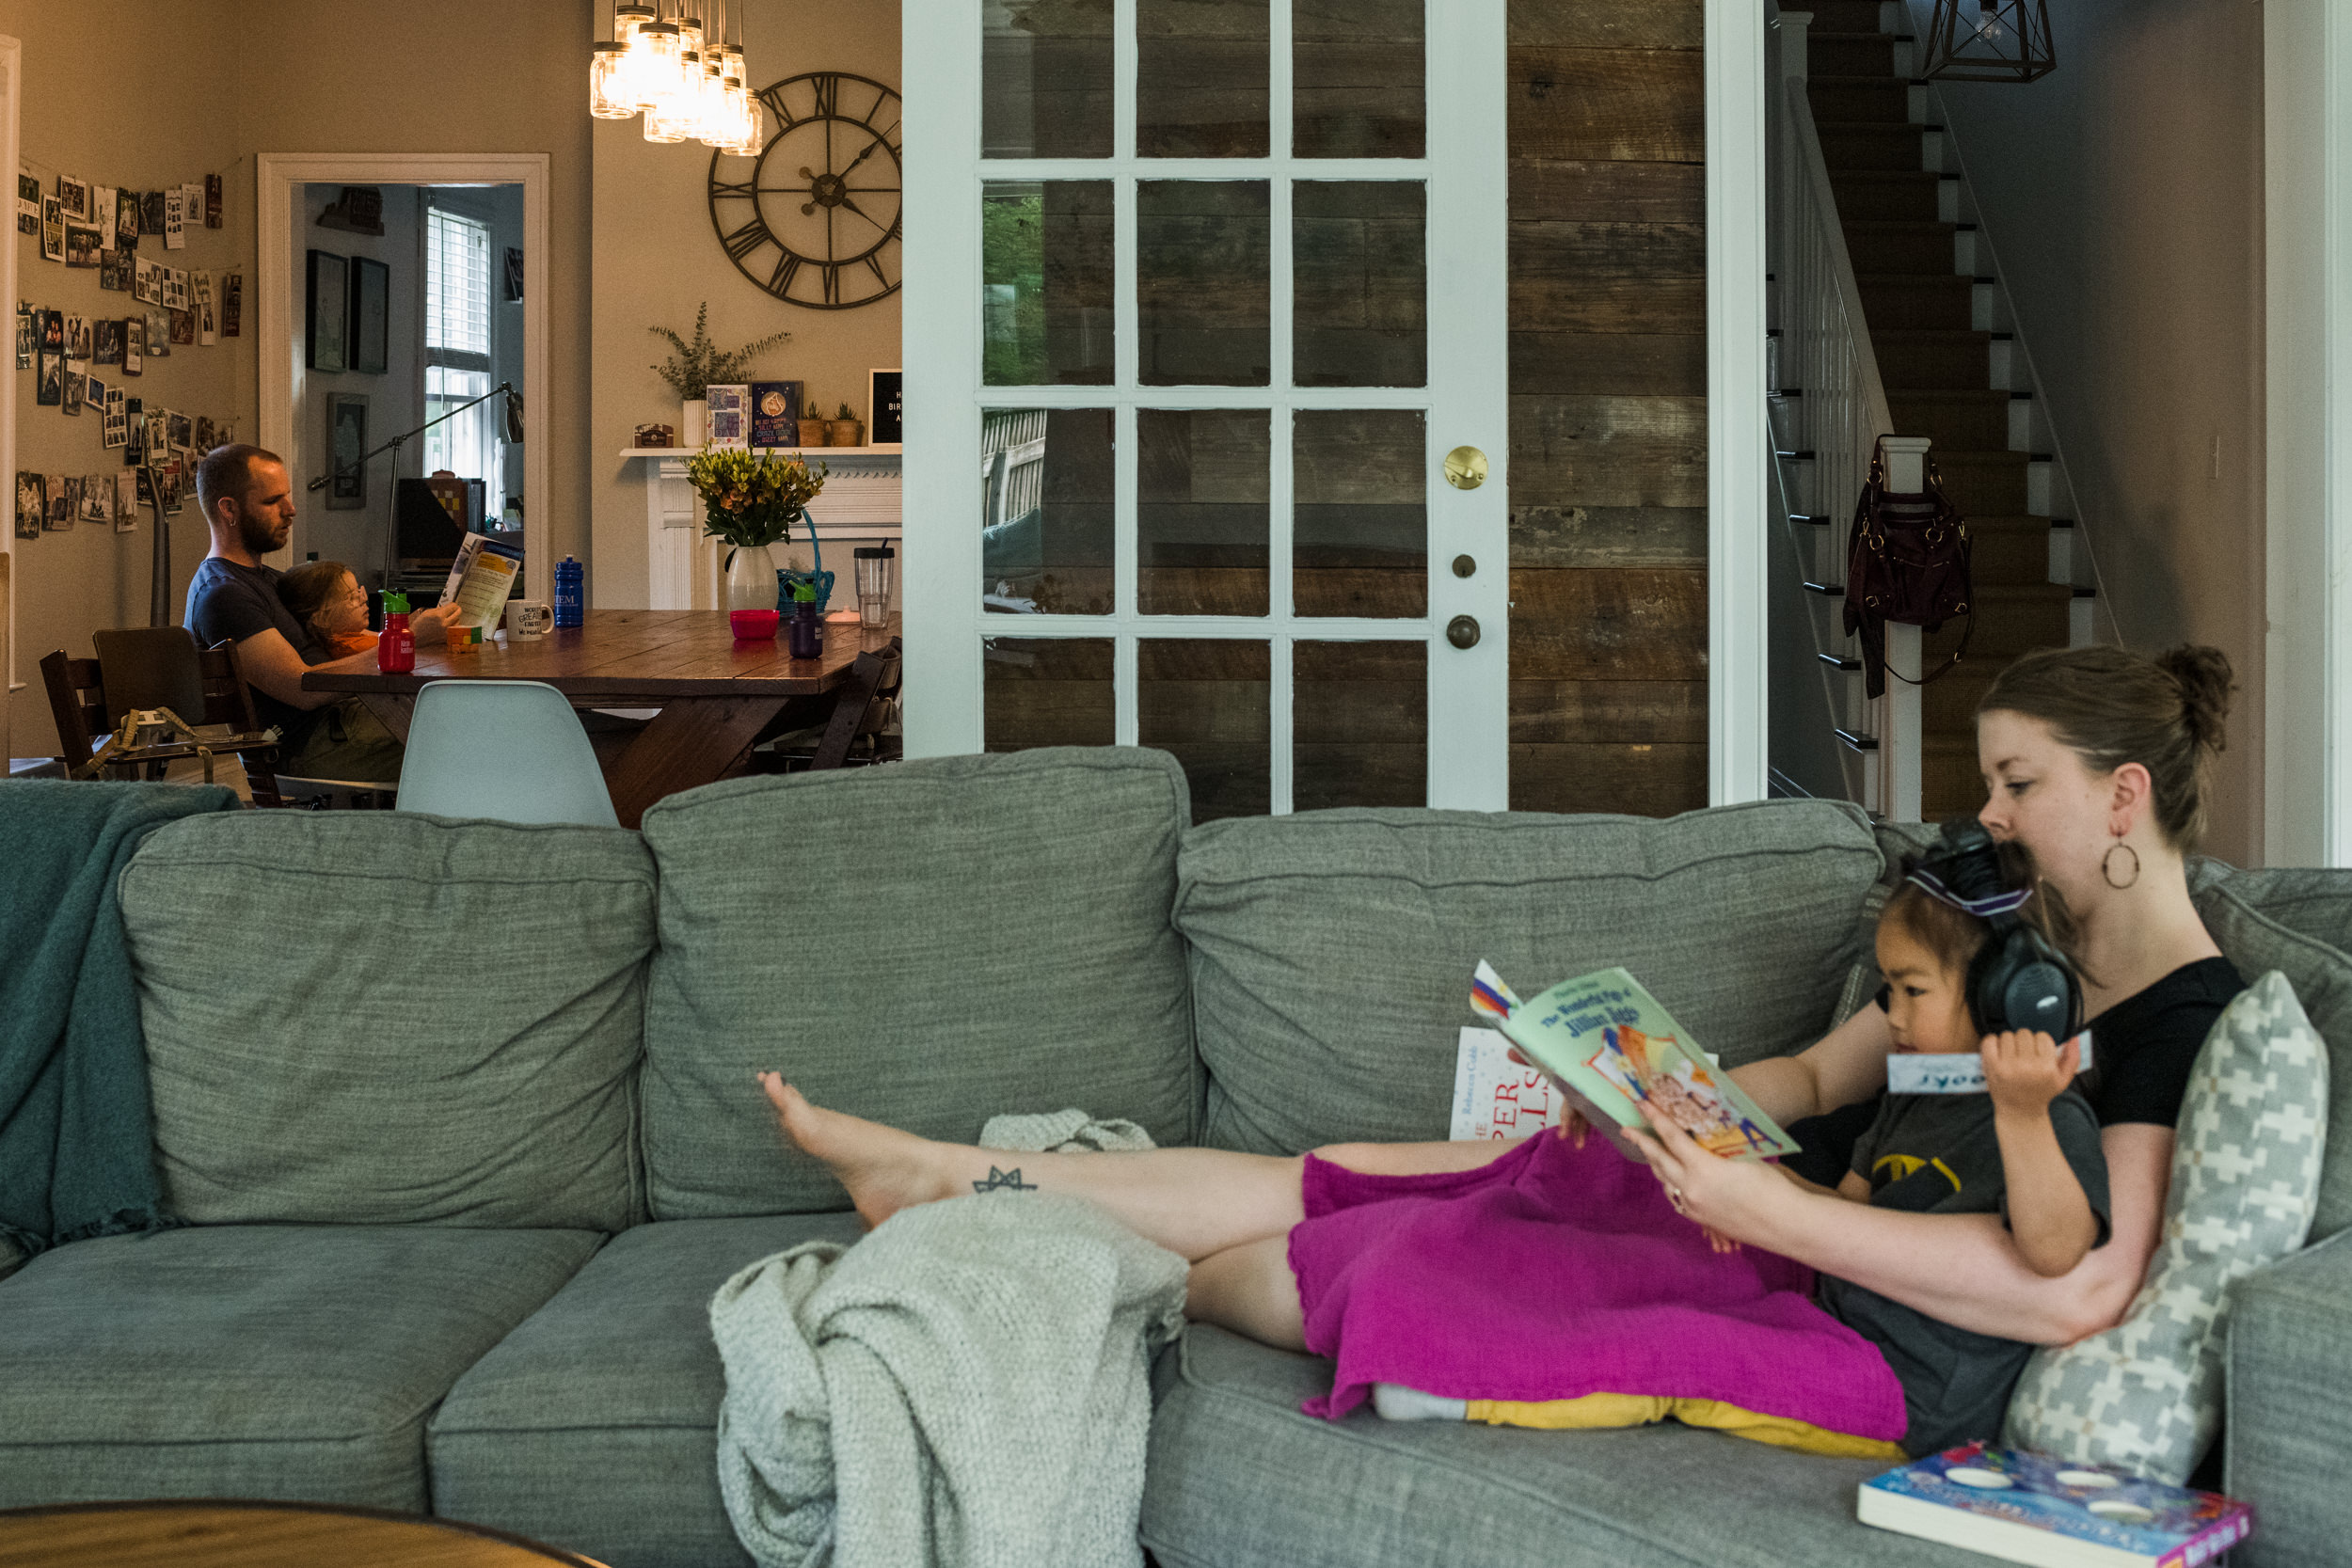 mom and daughter reading together on the couch while dad and other daughter reads together at the dining table.